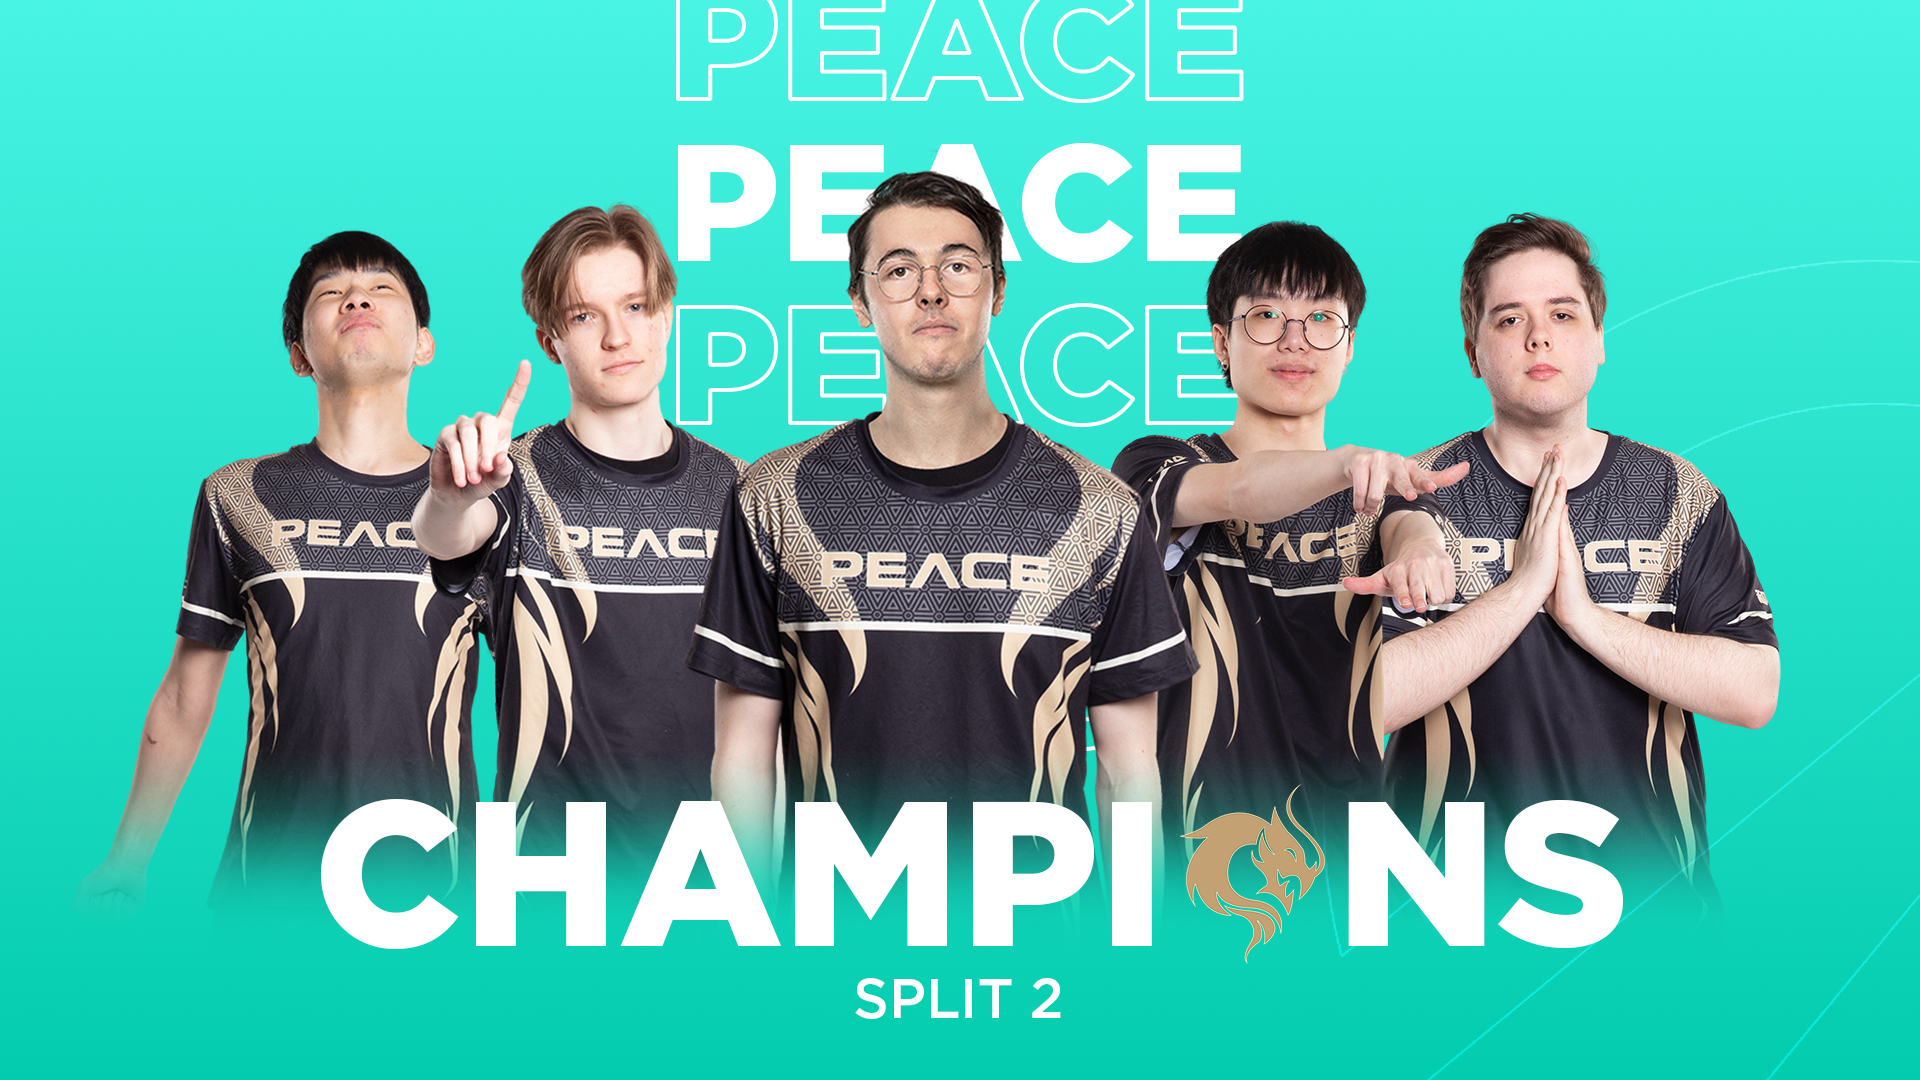 Read more about the article Oceanic Underdogs 'Peace' Upset Favourites to Claim Title of LCO Split 2 Champions, Viewership Records Smashed